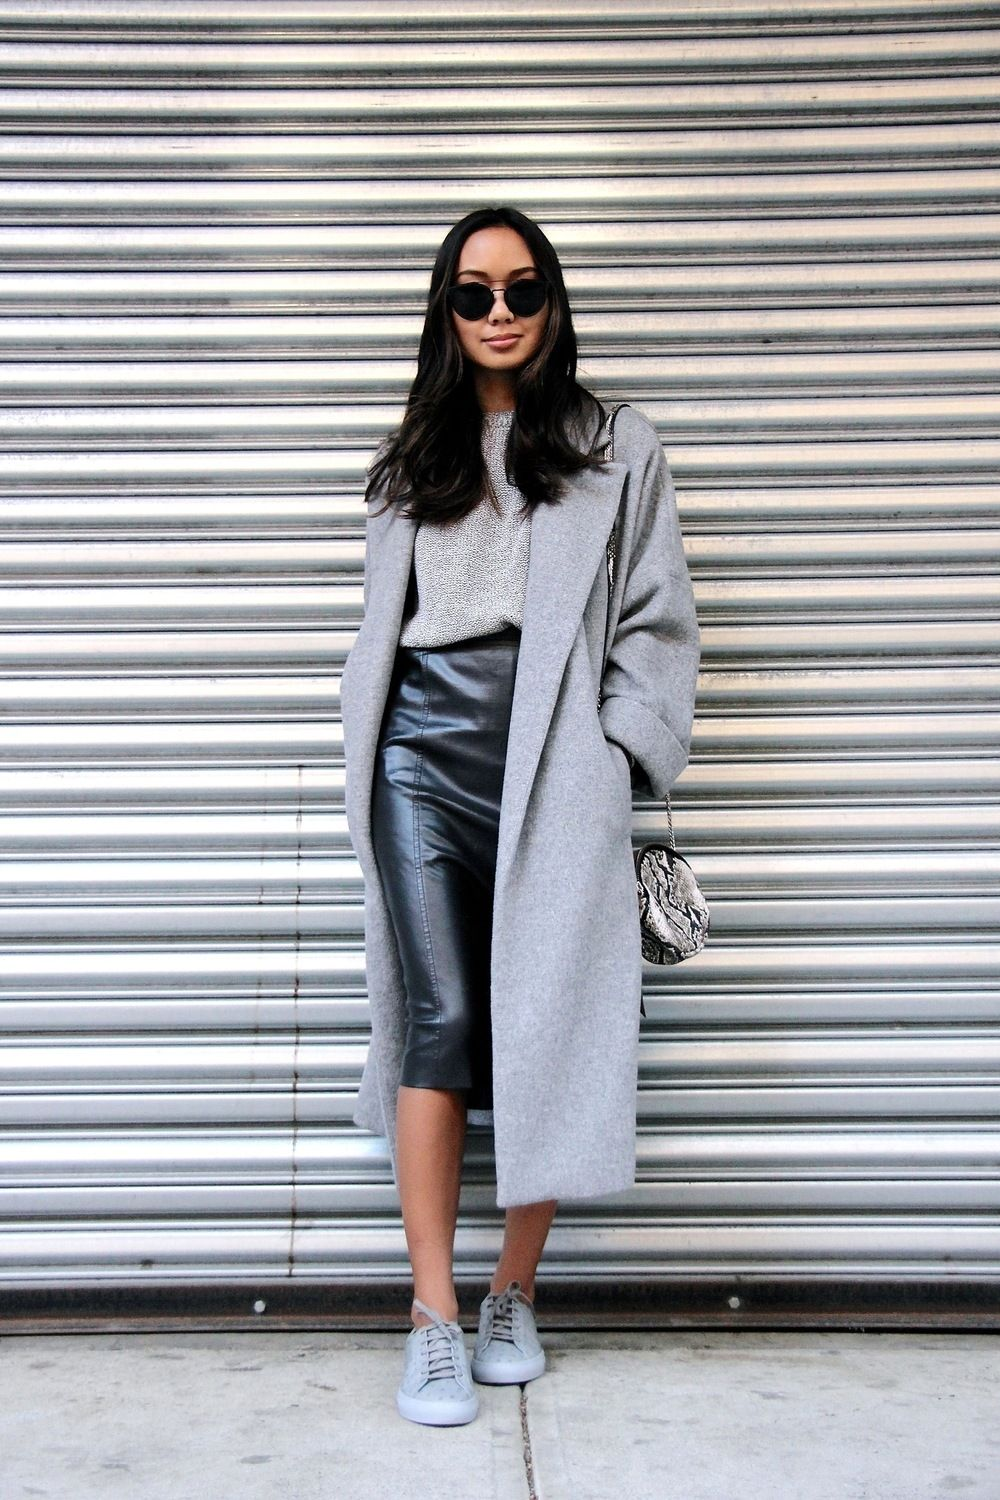 bdd4e3839 How To Wear Sneakers With A Skirt (The Edit) | Women's Fashion ...